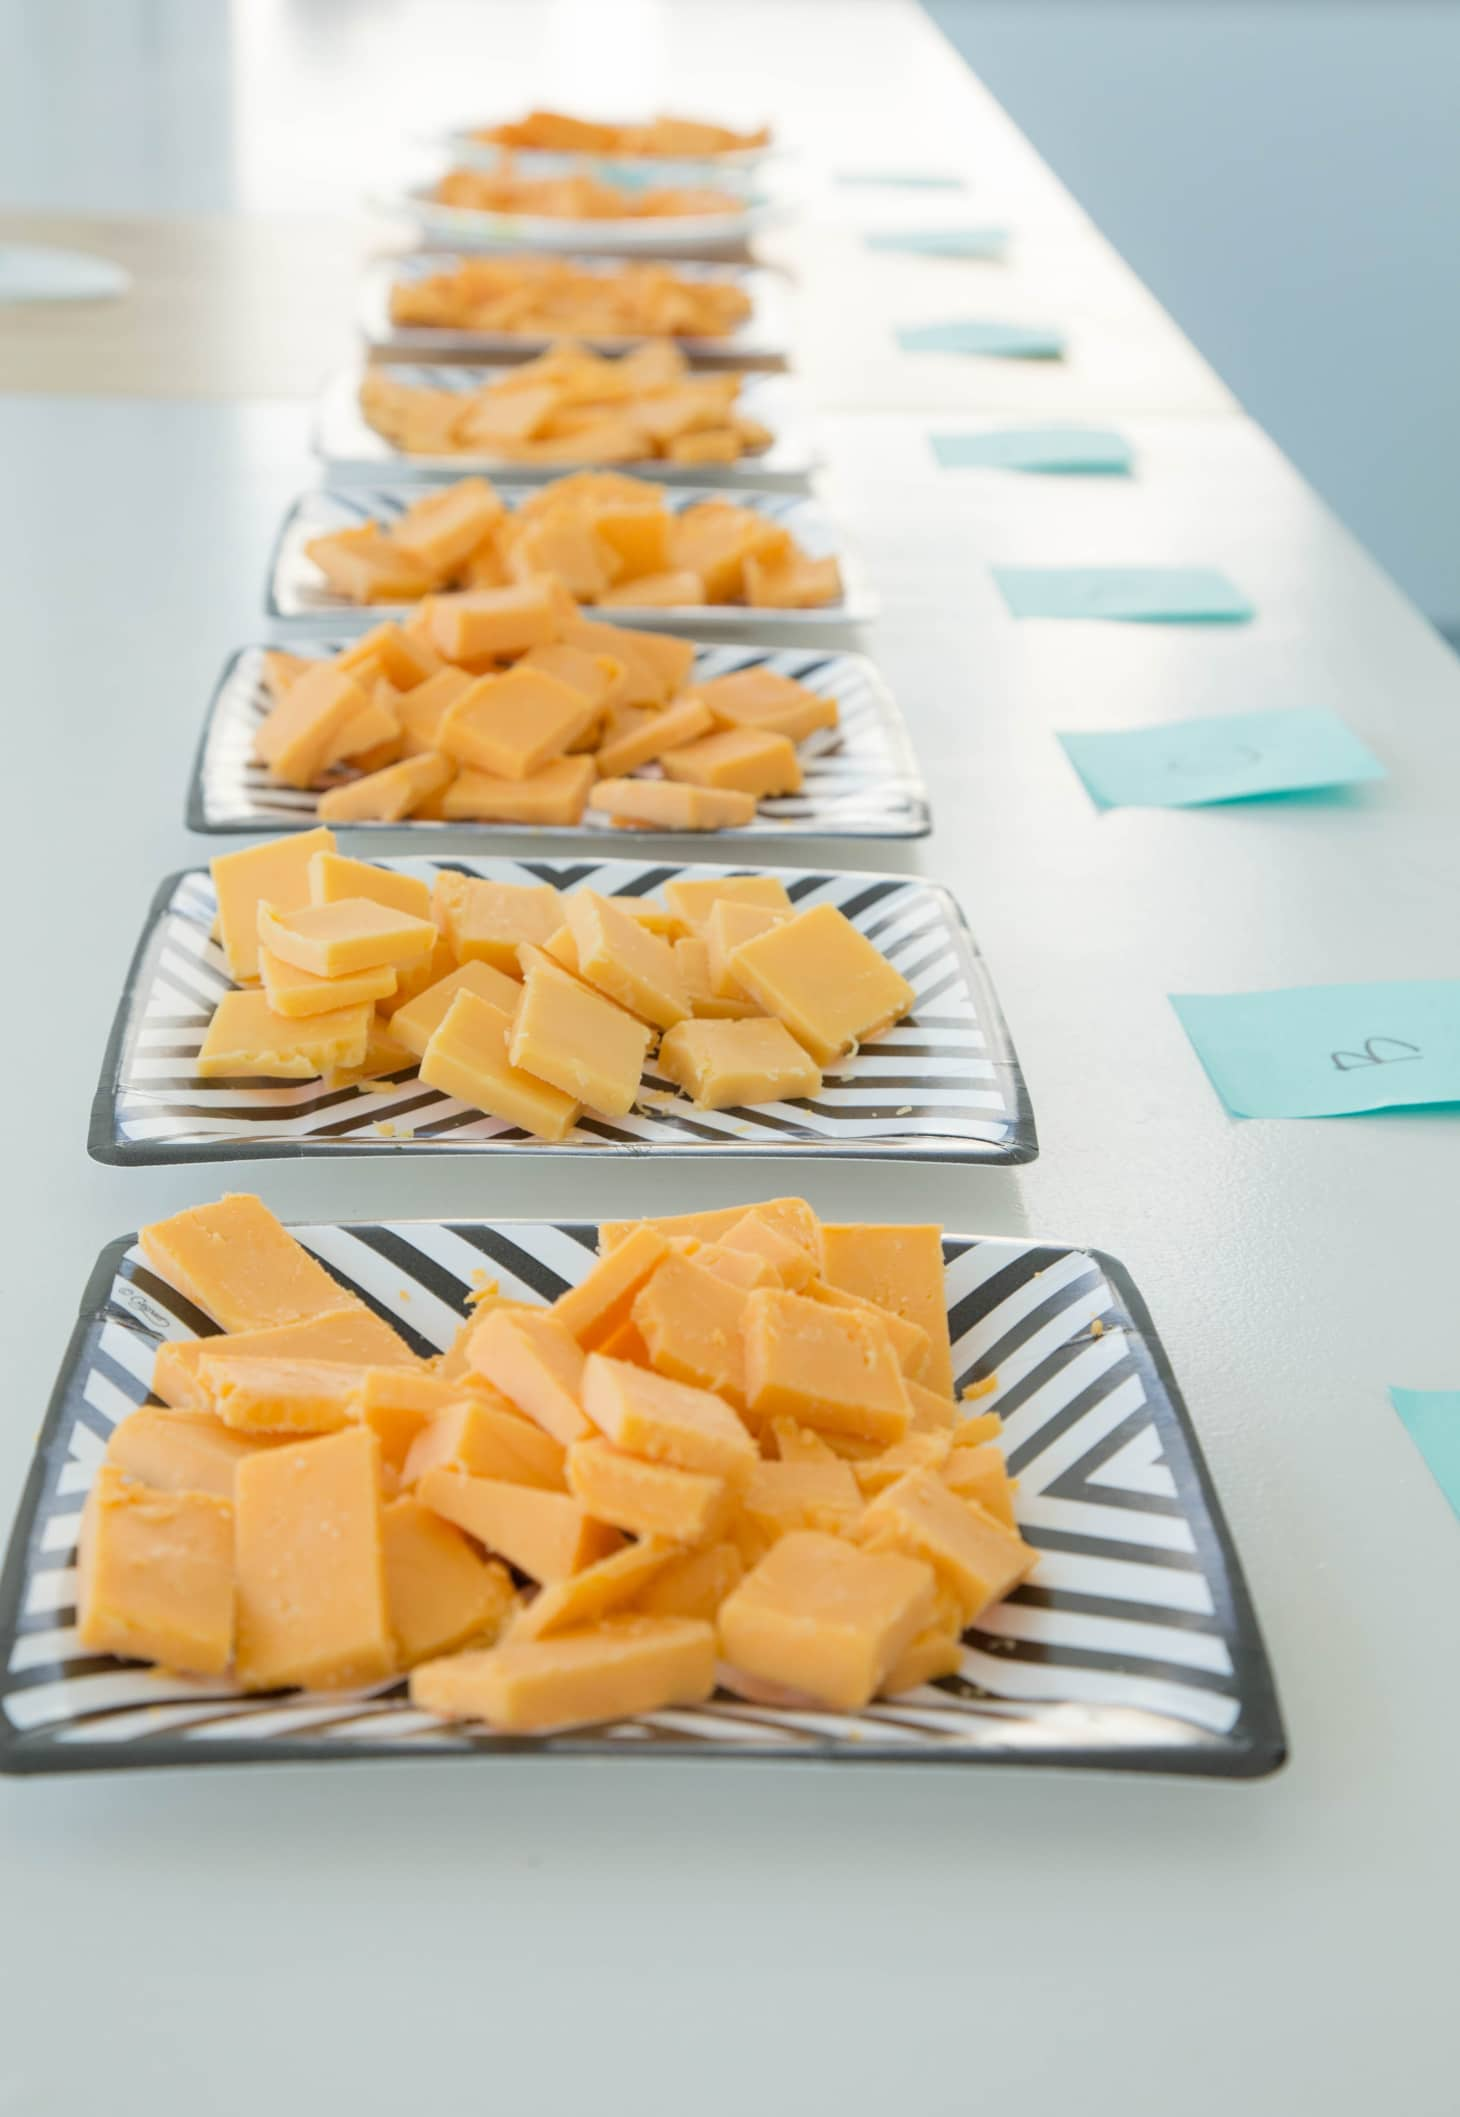 The Cheddar Cheese Taste Test: We Tried 8 Brands and Here's